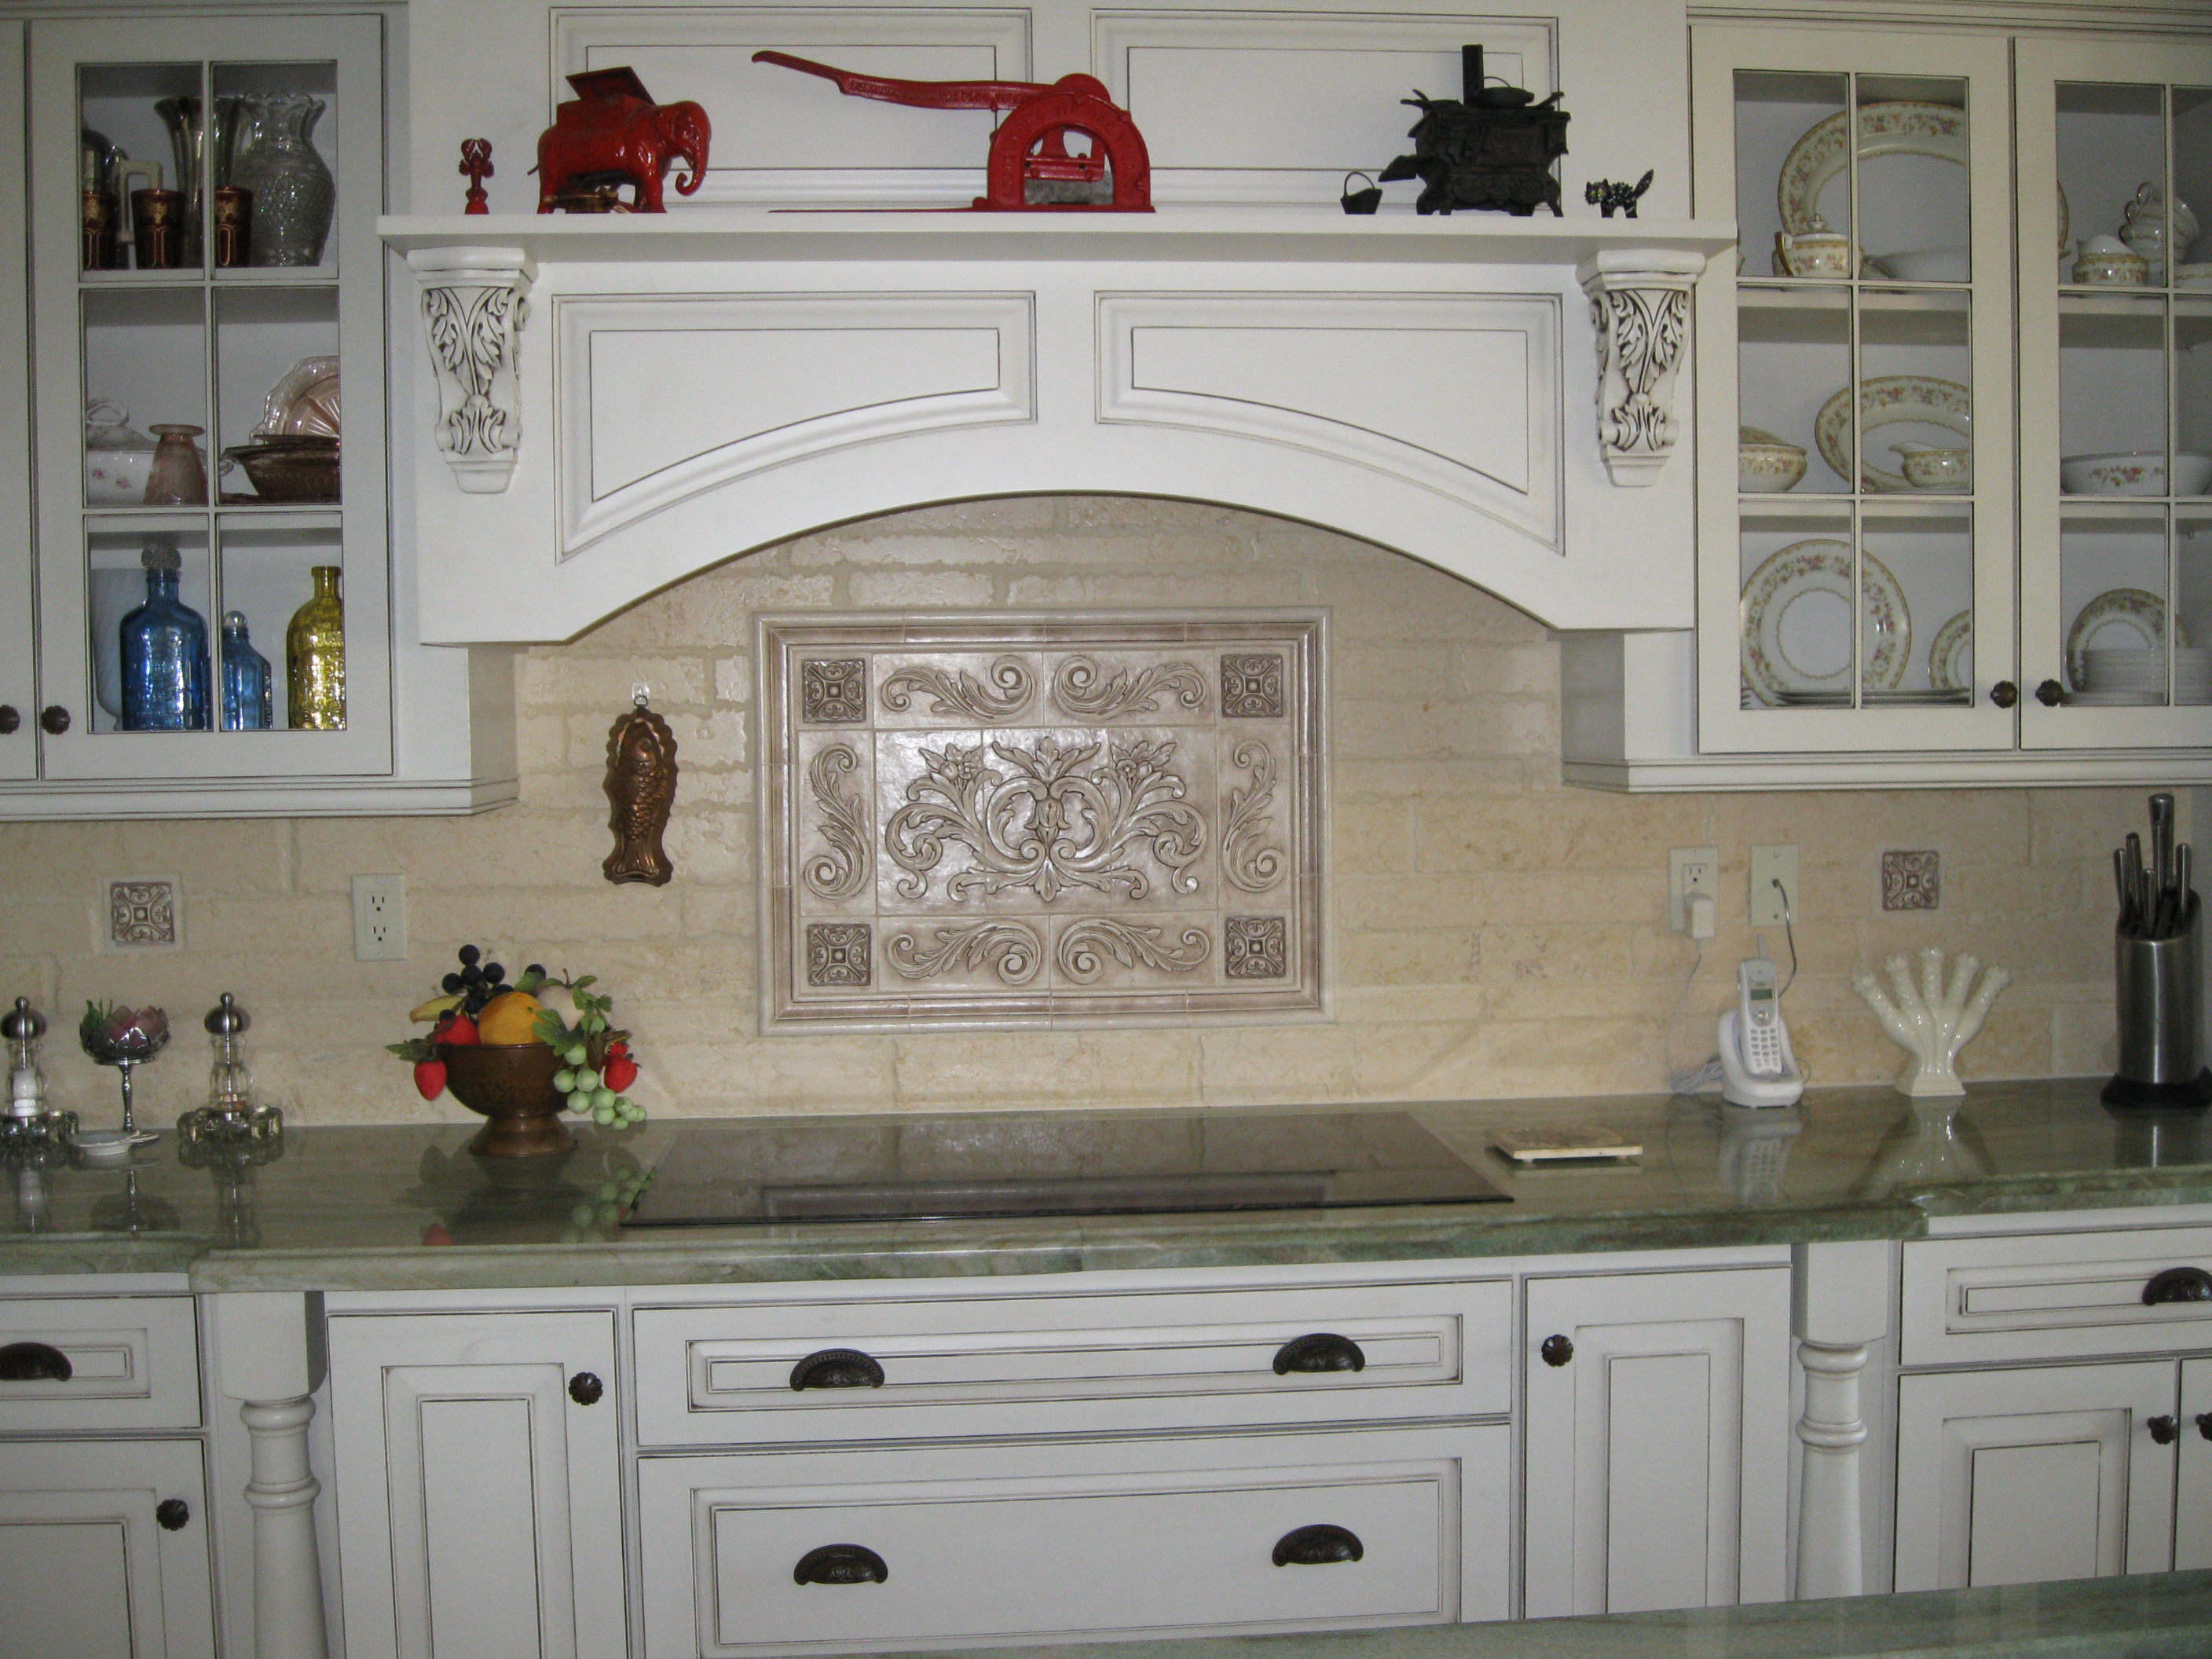 Hand pressed Floral tiles installed in kitchen backsplash